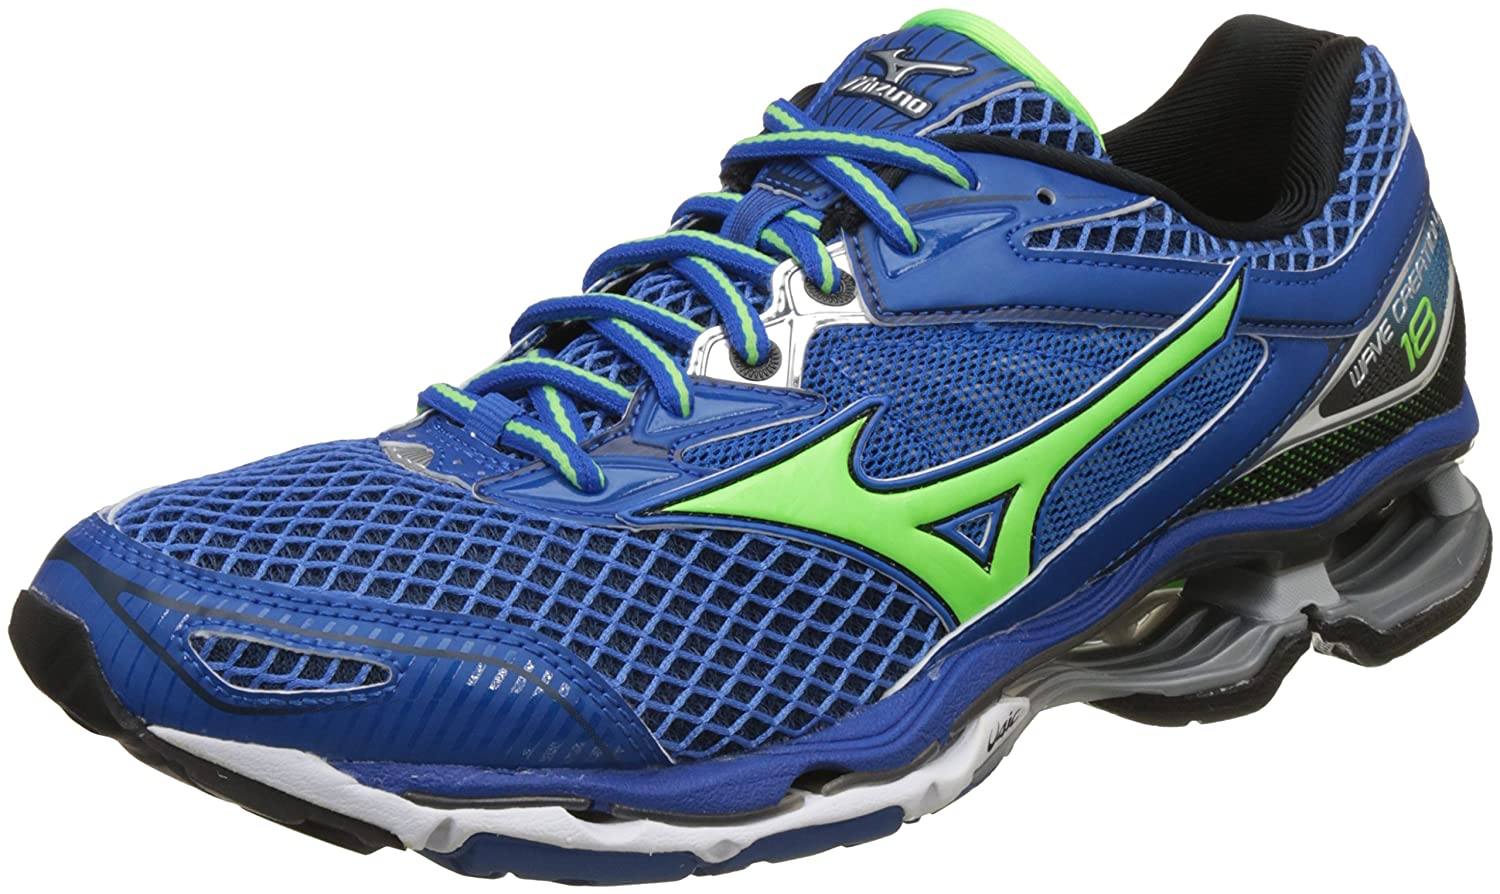 9bc7b00861c Mizuno Men s R6A1B2 Wave Creation 18 Running Shoes  Buy Online at Low  Prices in India - Amazon.in